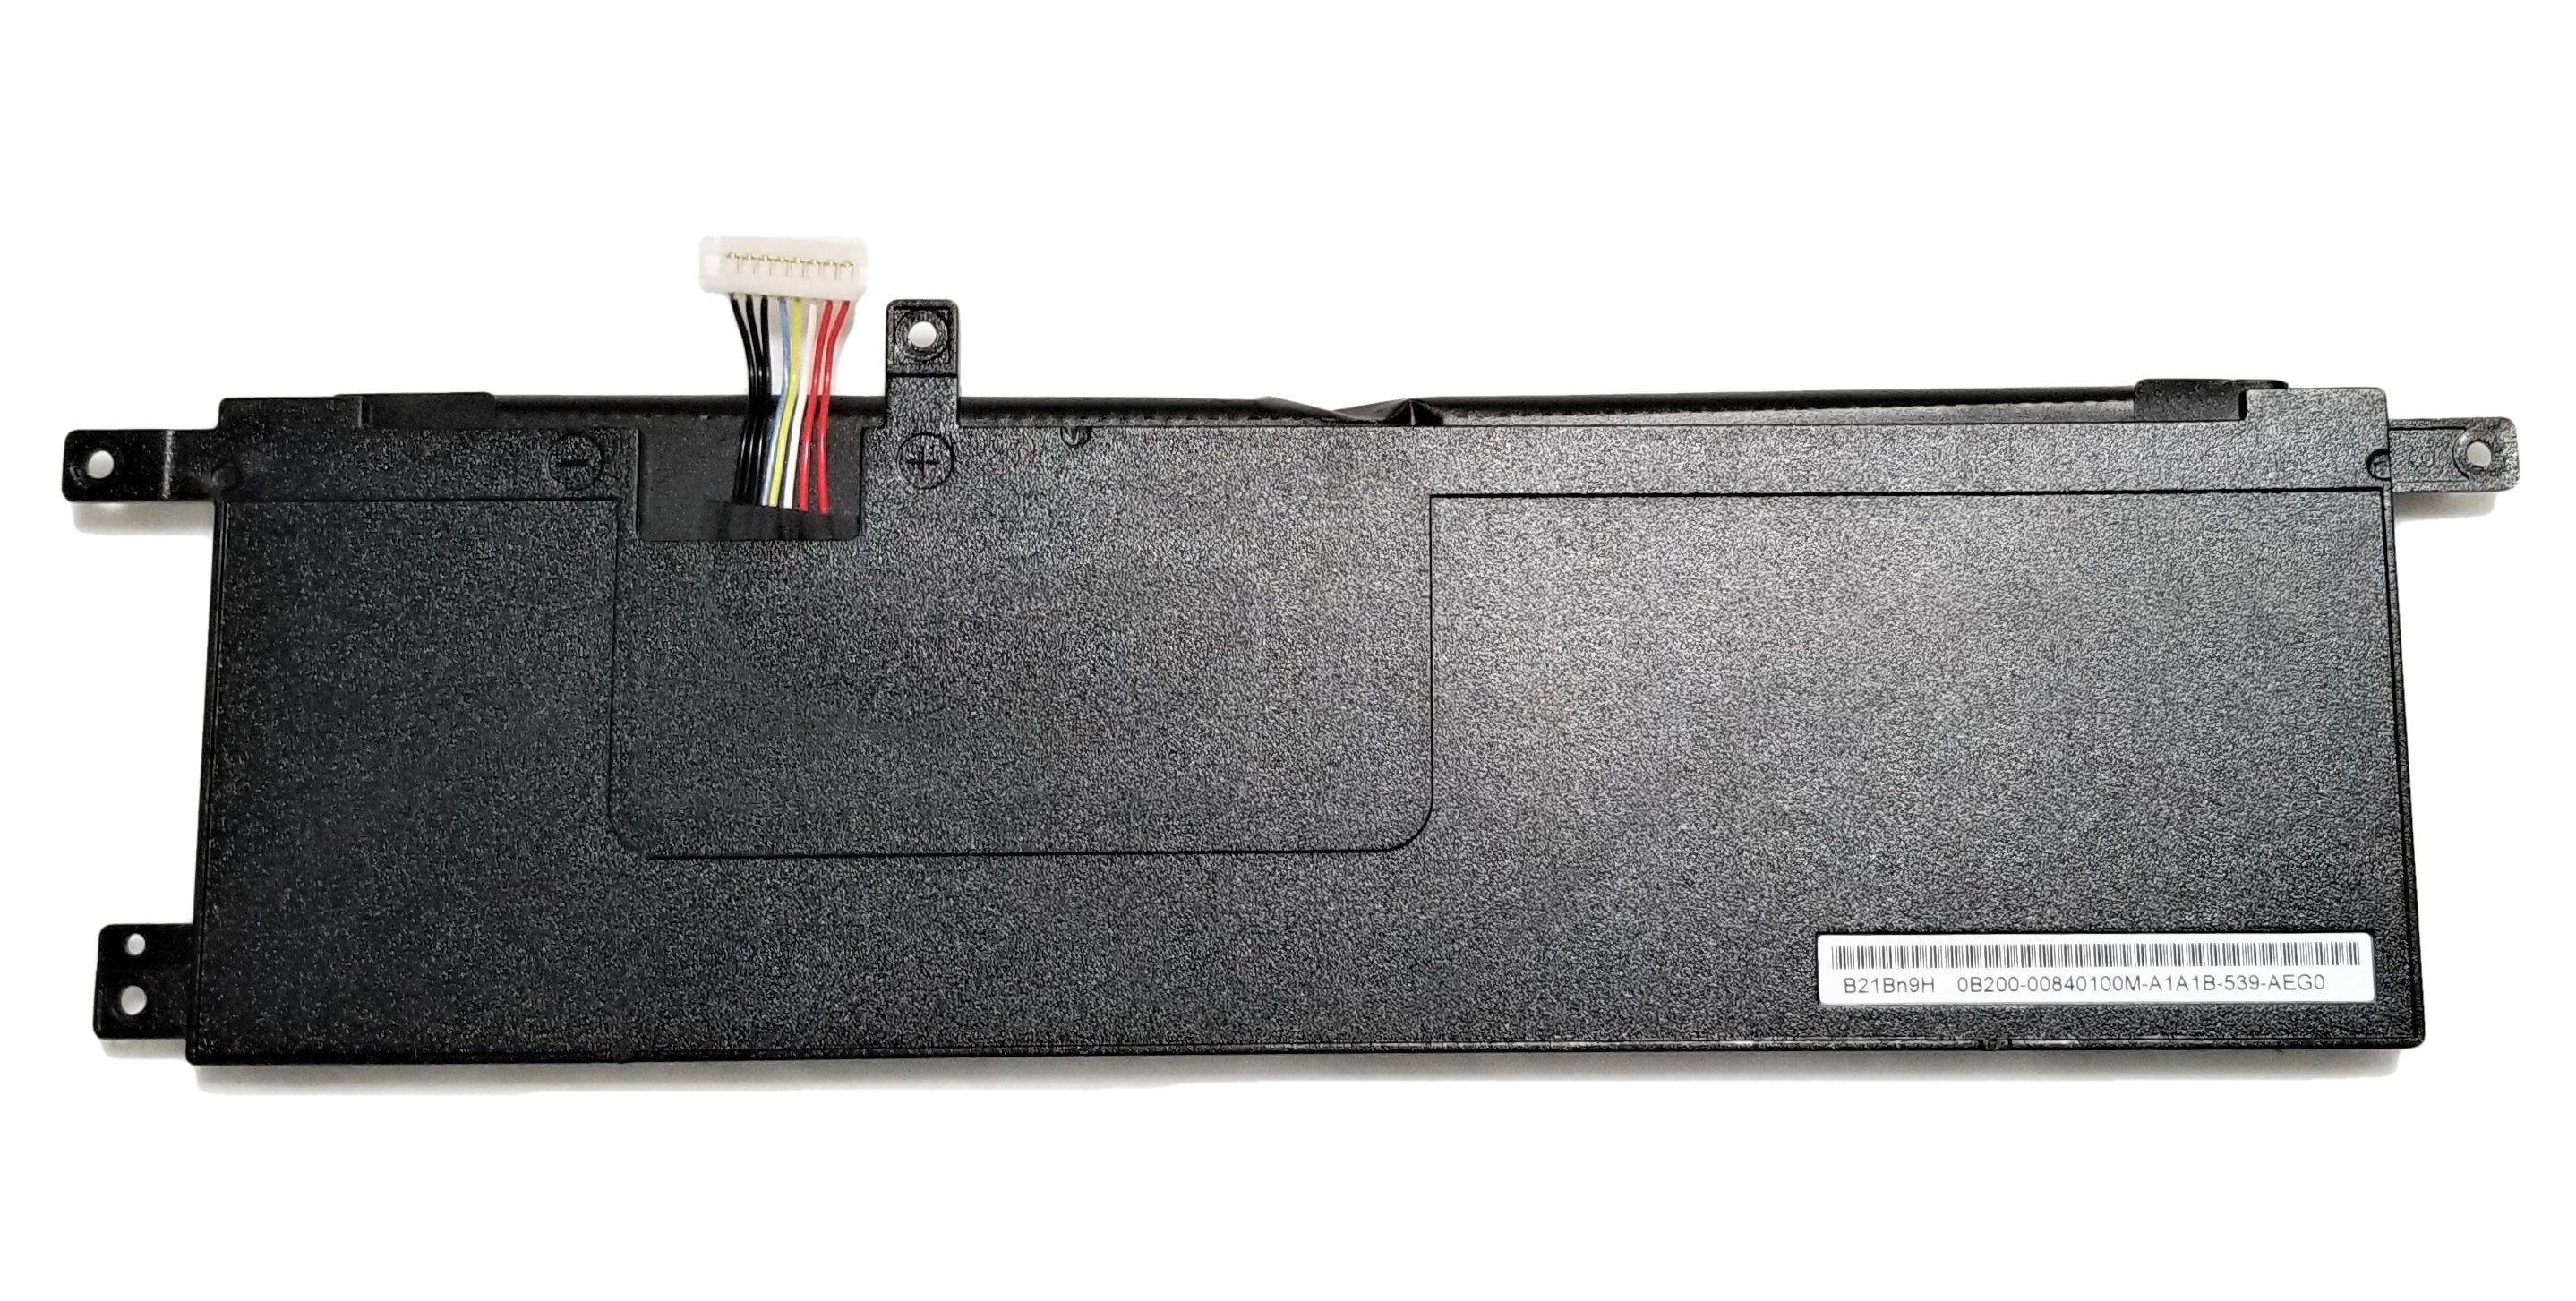 Asus X553S Notebook PC (OEM) Battery - B21N1329